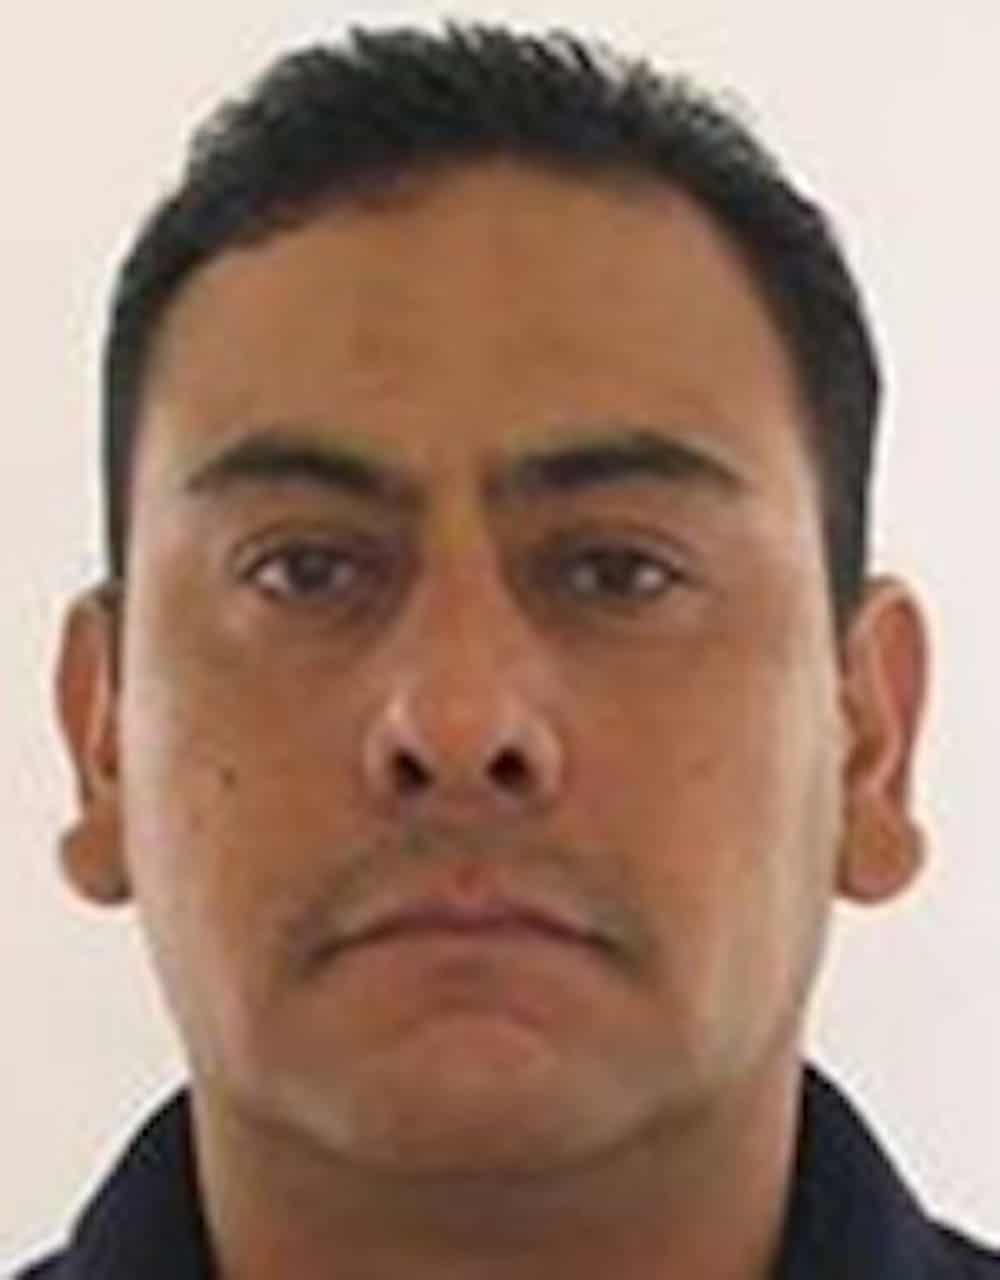 Alleged Member of Sinaloa Cartel Extradited on Drug Trafficking Charges